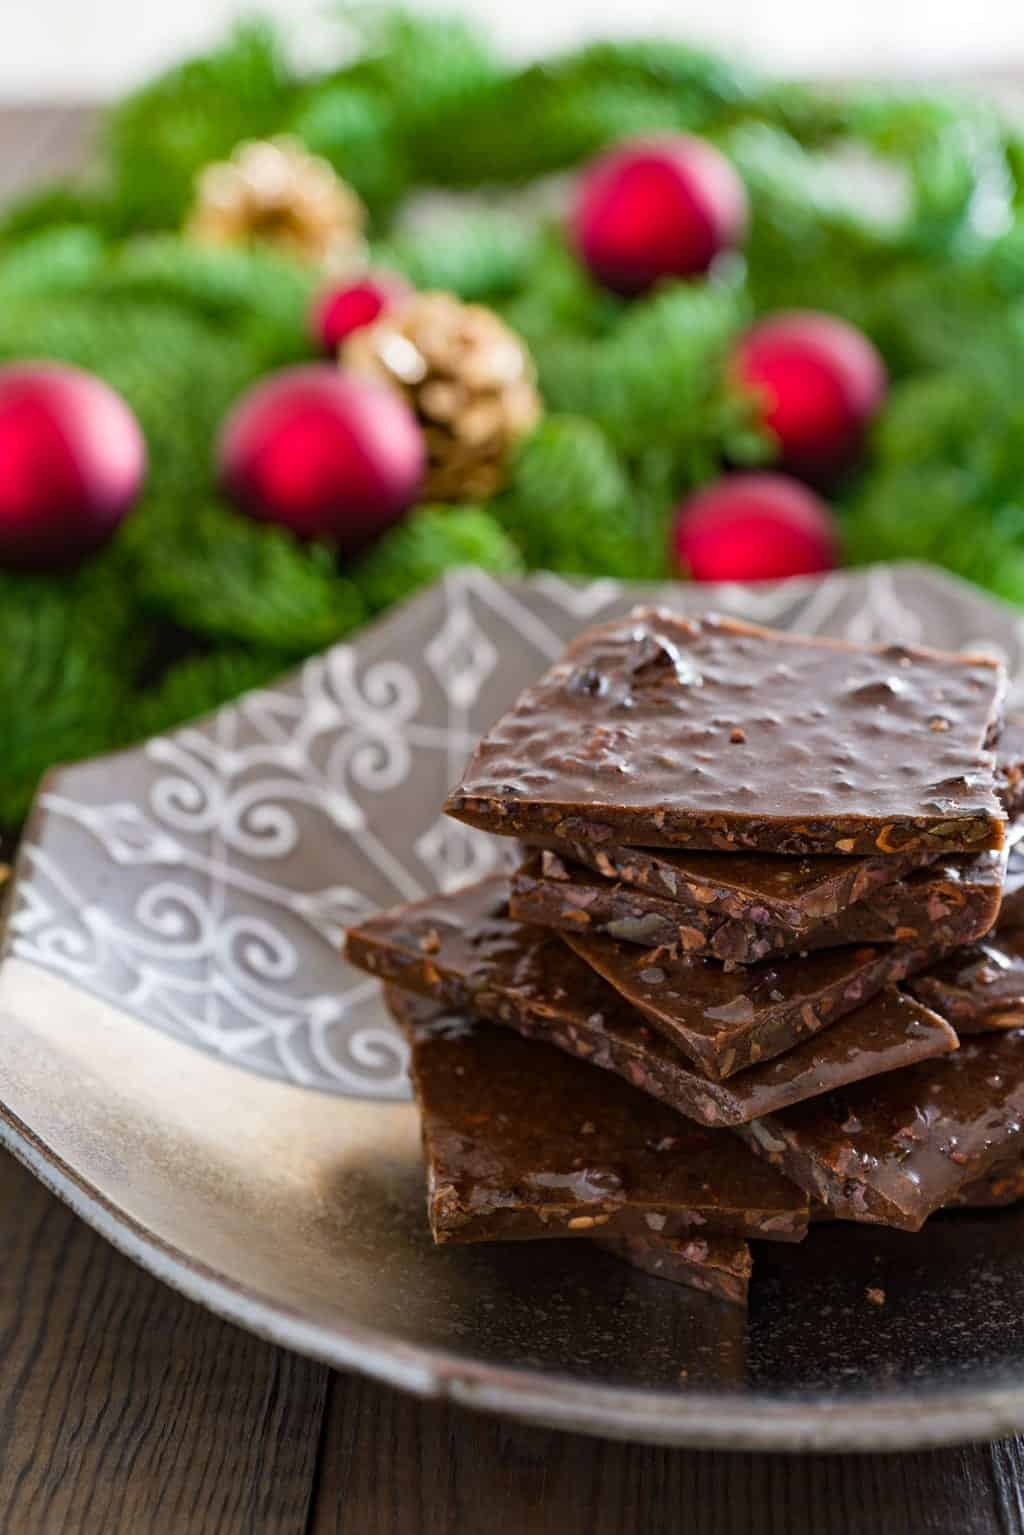 Delicious chocolate honey brittle with crunchy bits of cacao nibs.